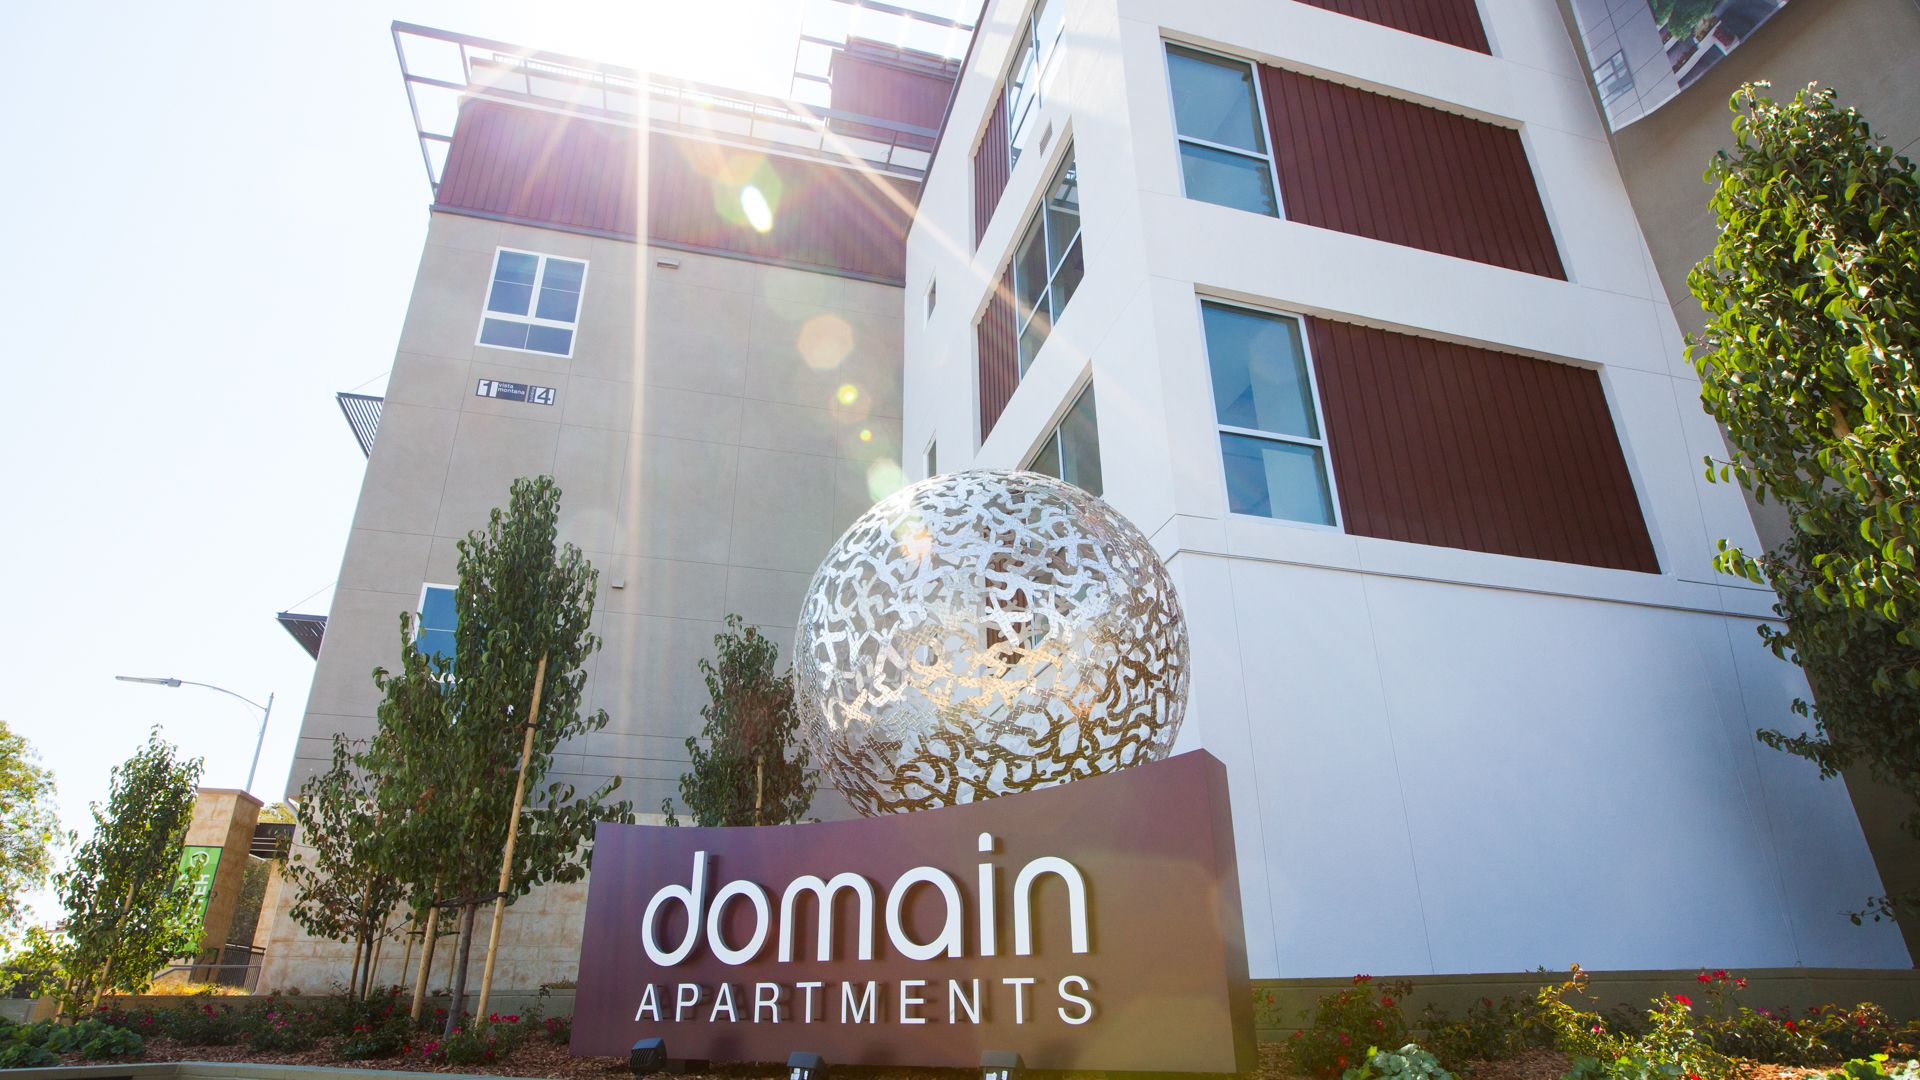 Domain Apartments - Building Domain Apartments - Building and Sign ...